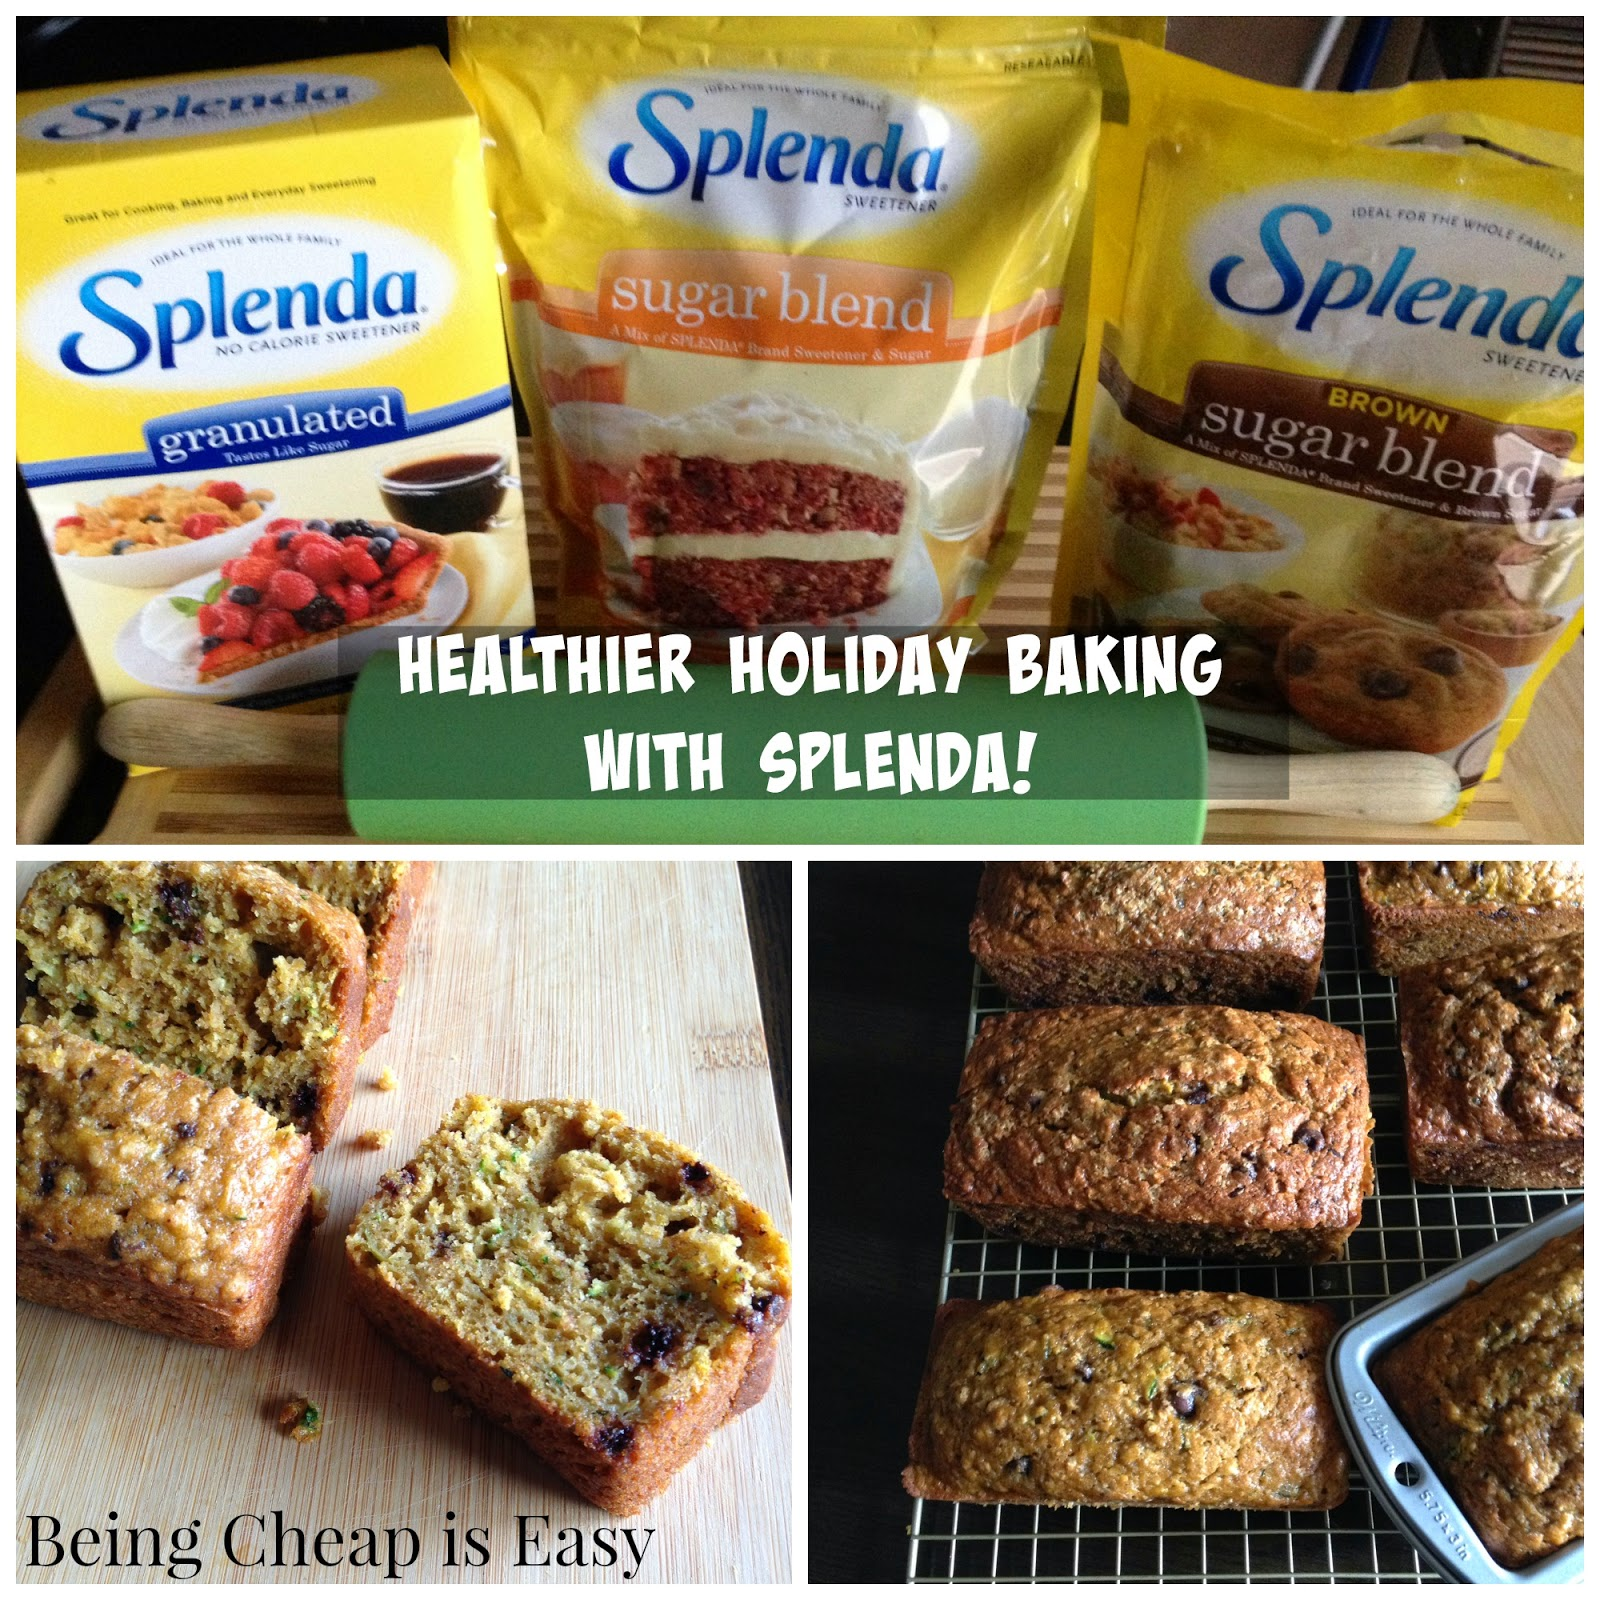 #HealthyEssentials, Splenda, holiday baking, baking with sugar substitutes, #ad